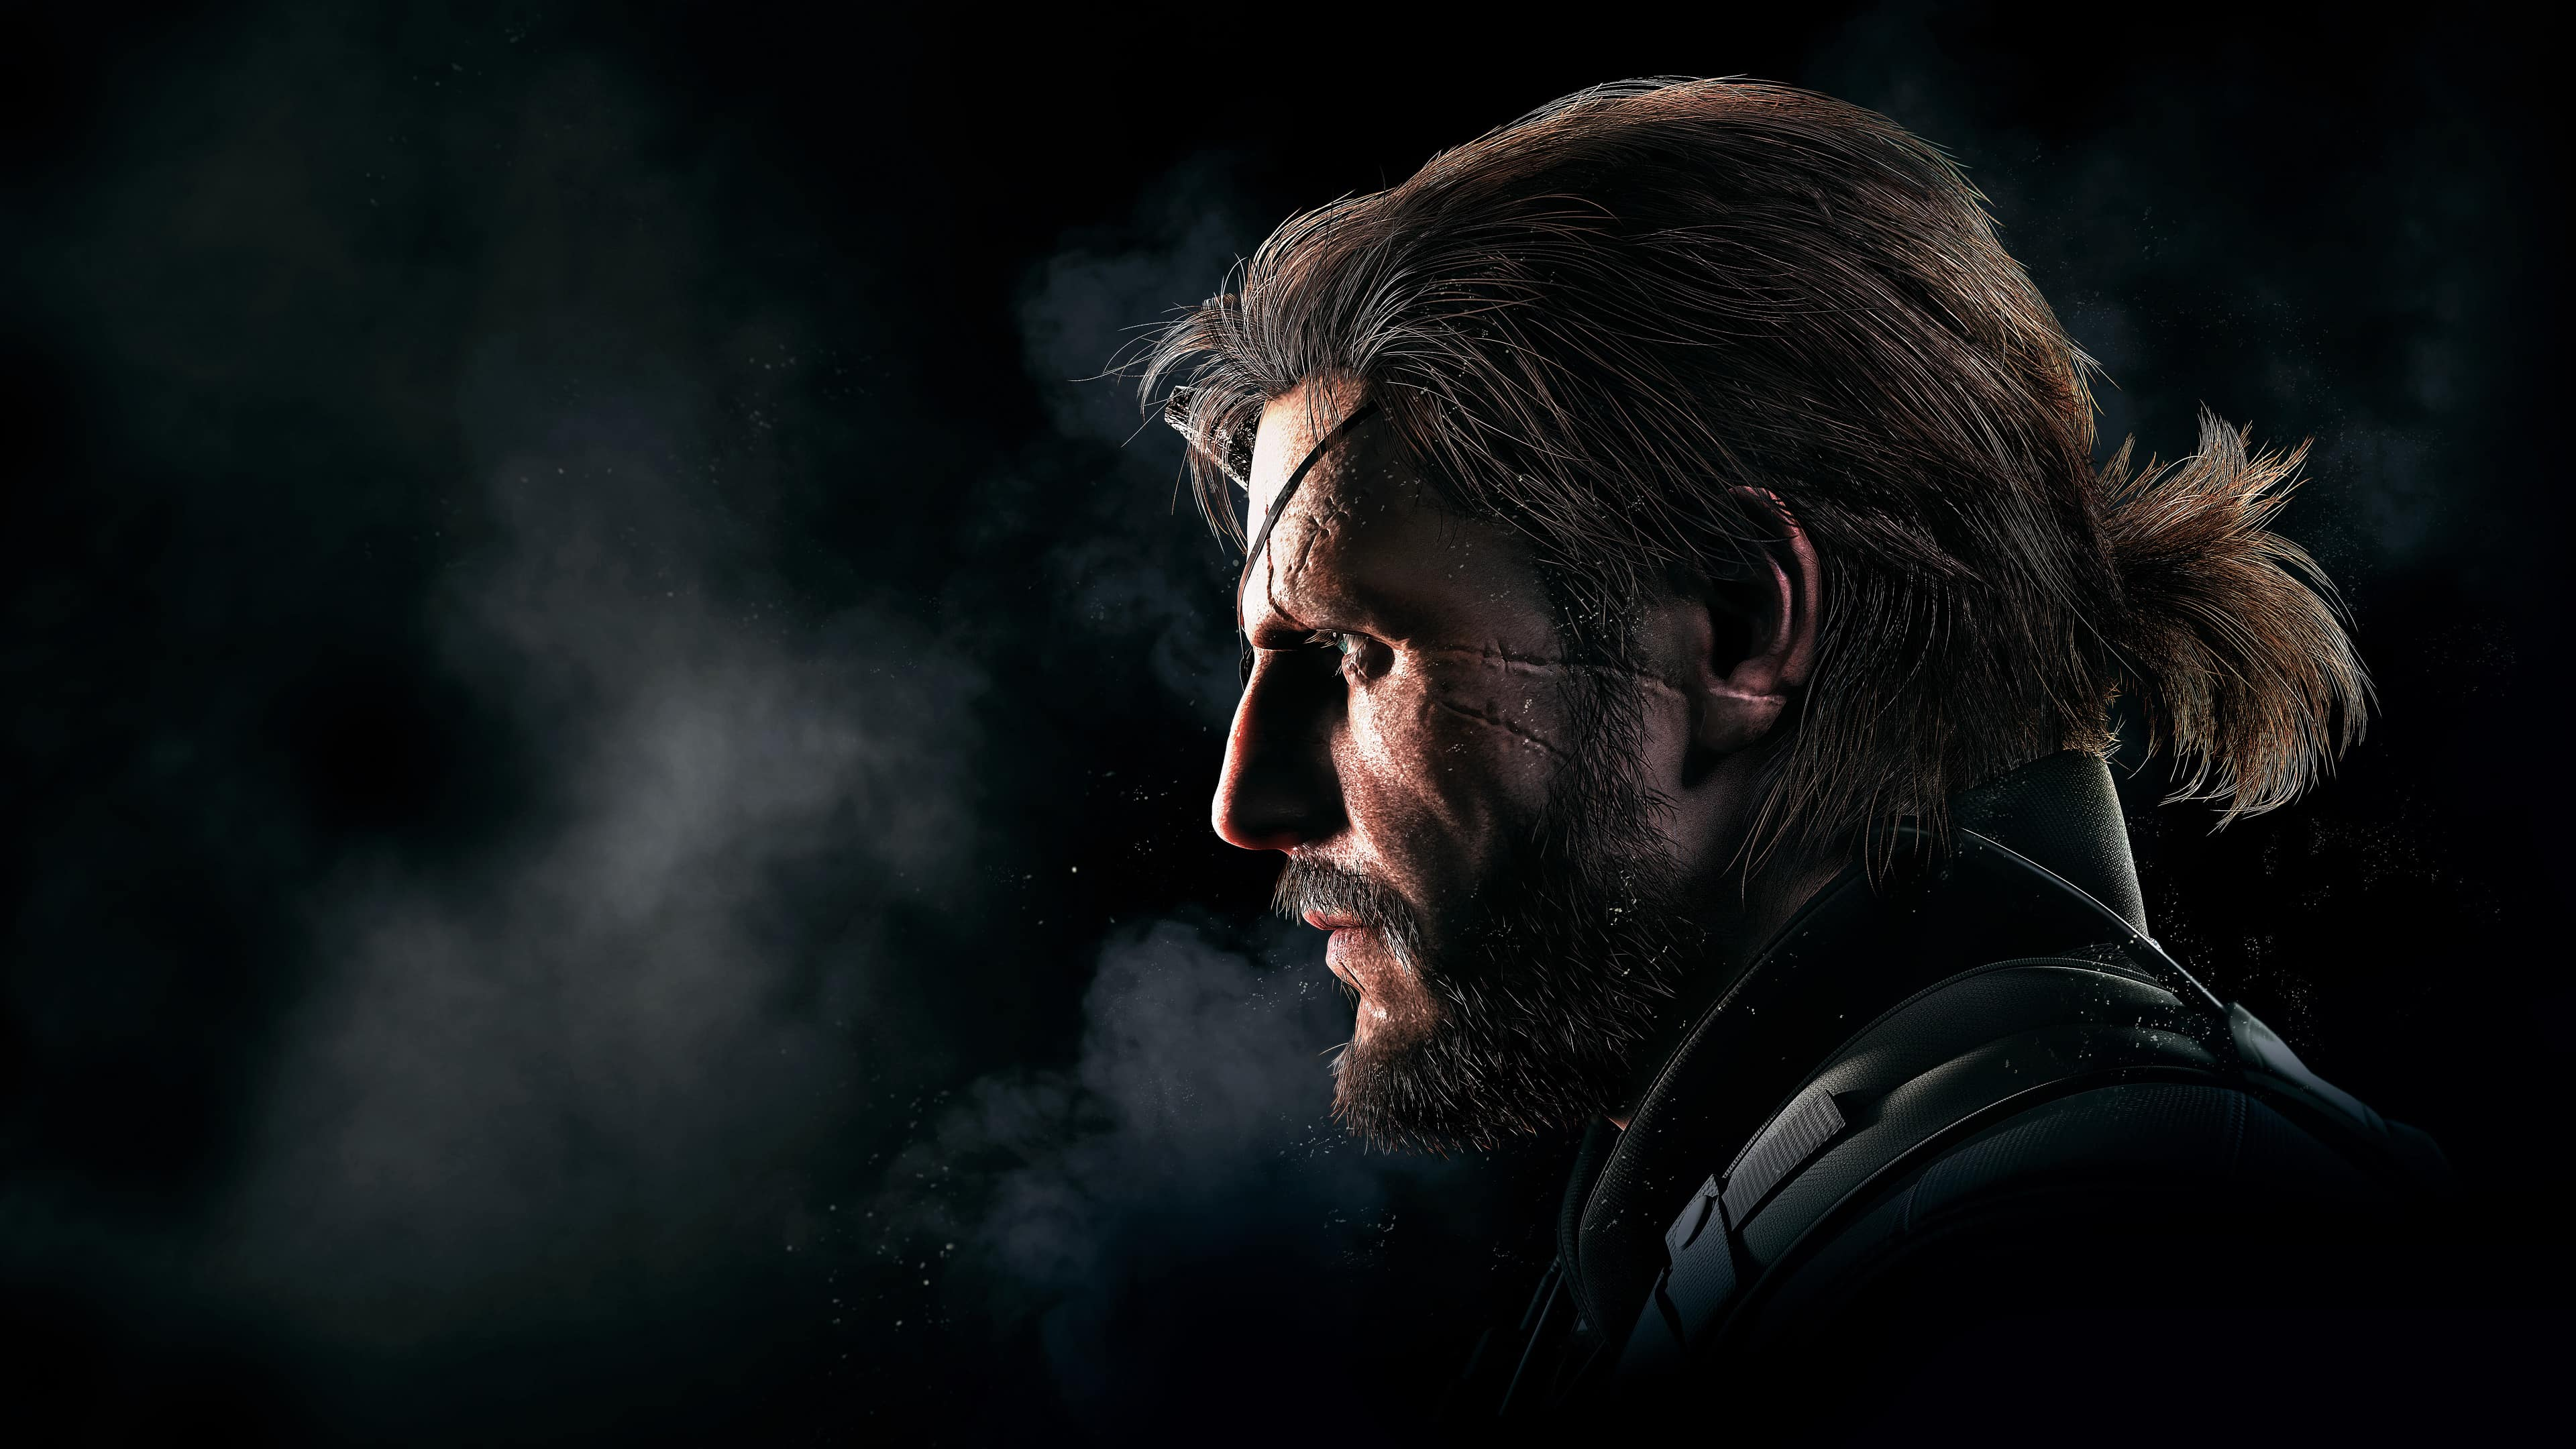 Mgs The Phantom Pain Big Boss Venom Snake Uhd 4k Wallpaper Pixelz